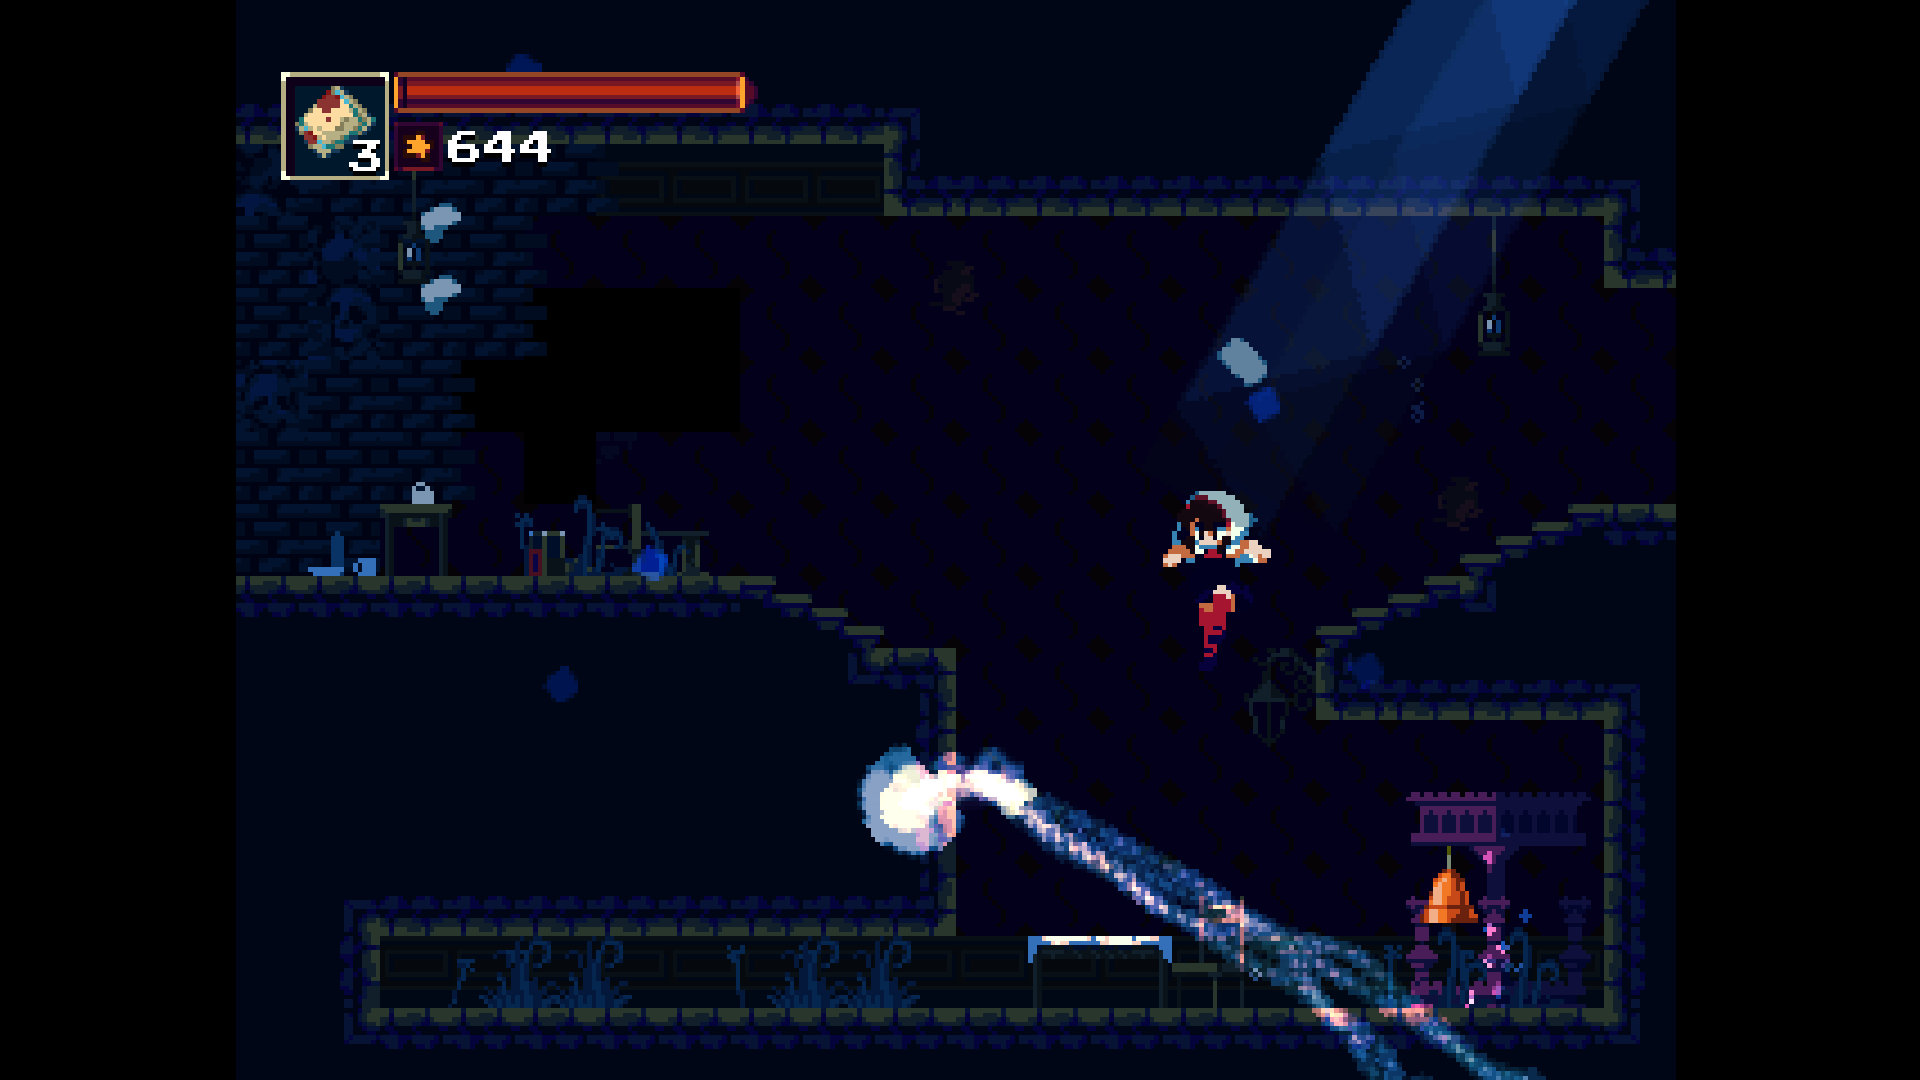 momodora video game